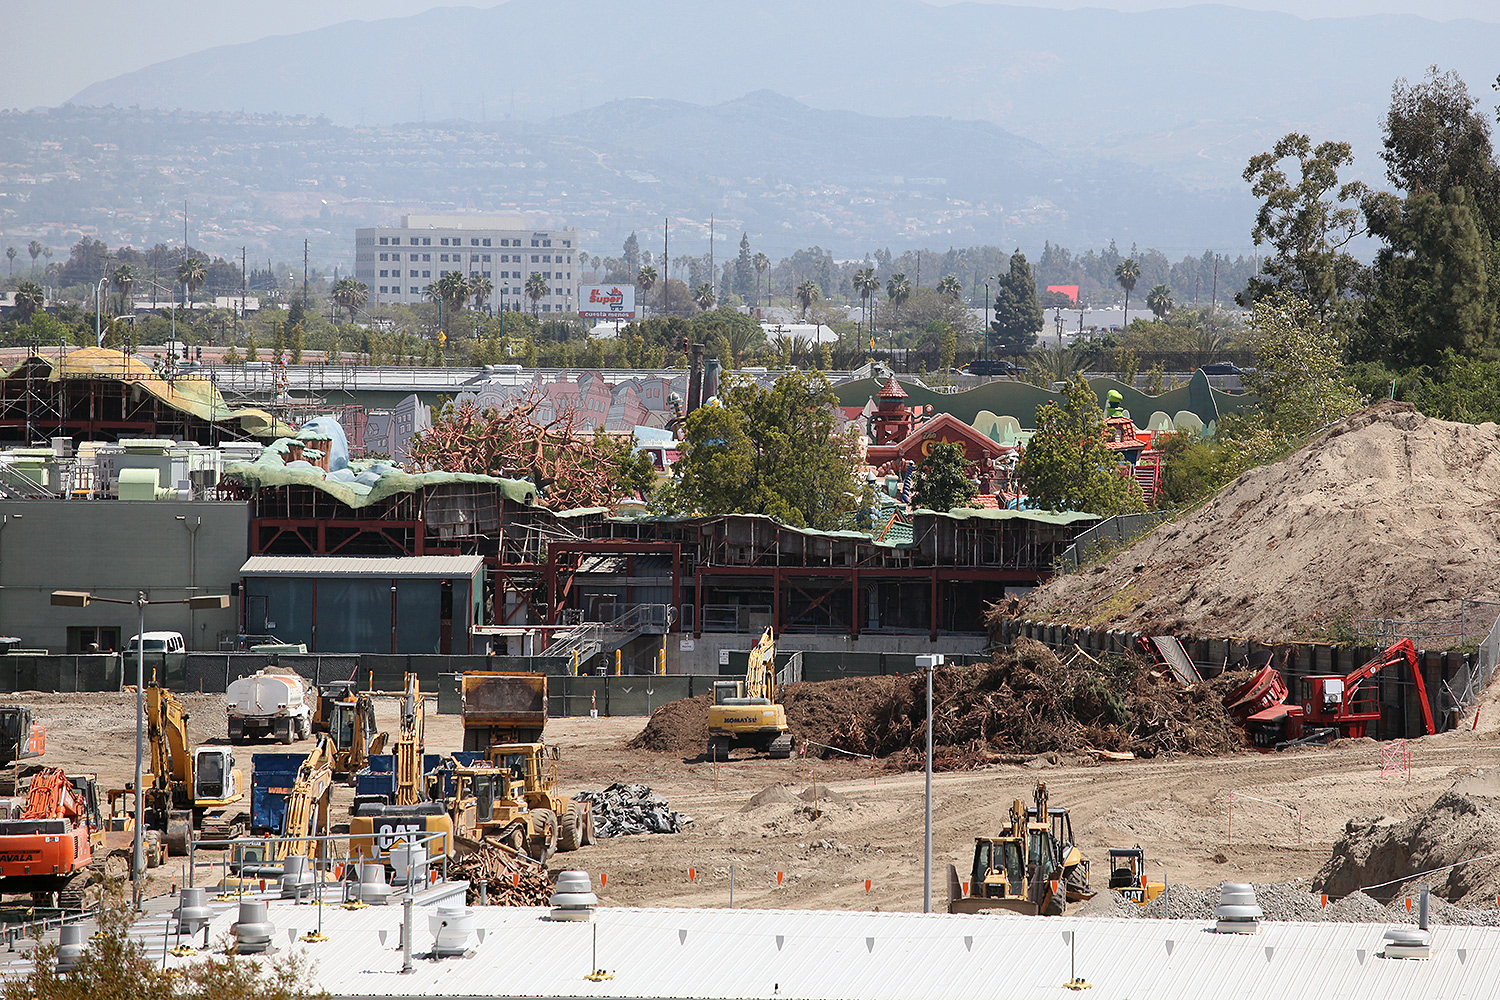 Disneyland Star Wars Land Progress 04/03/2016